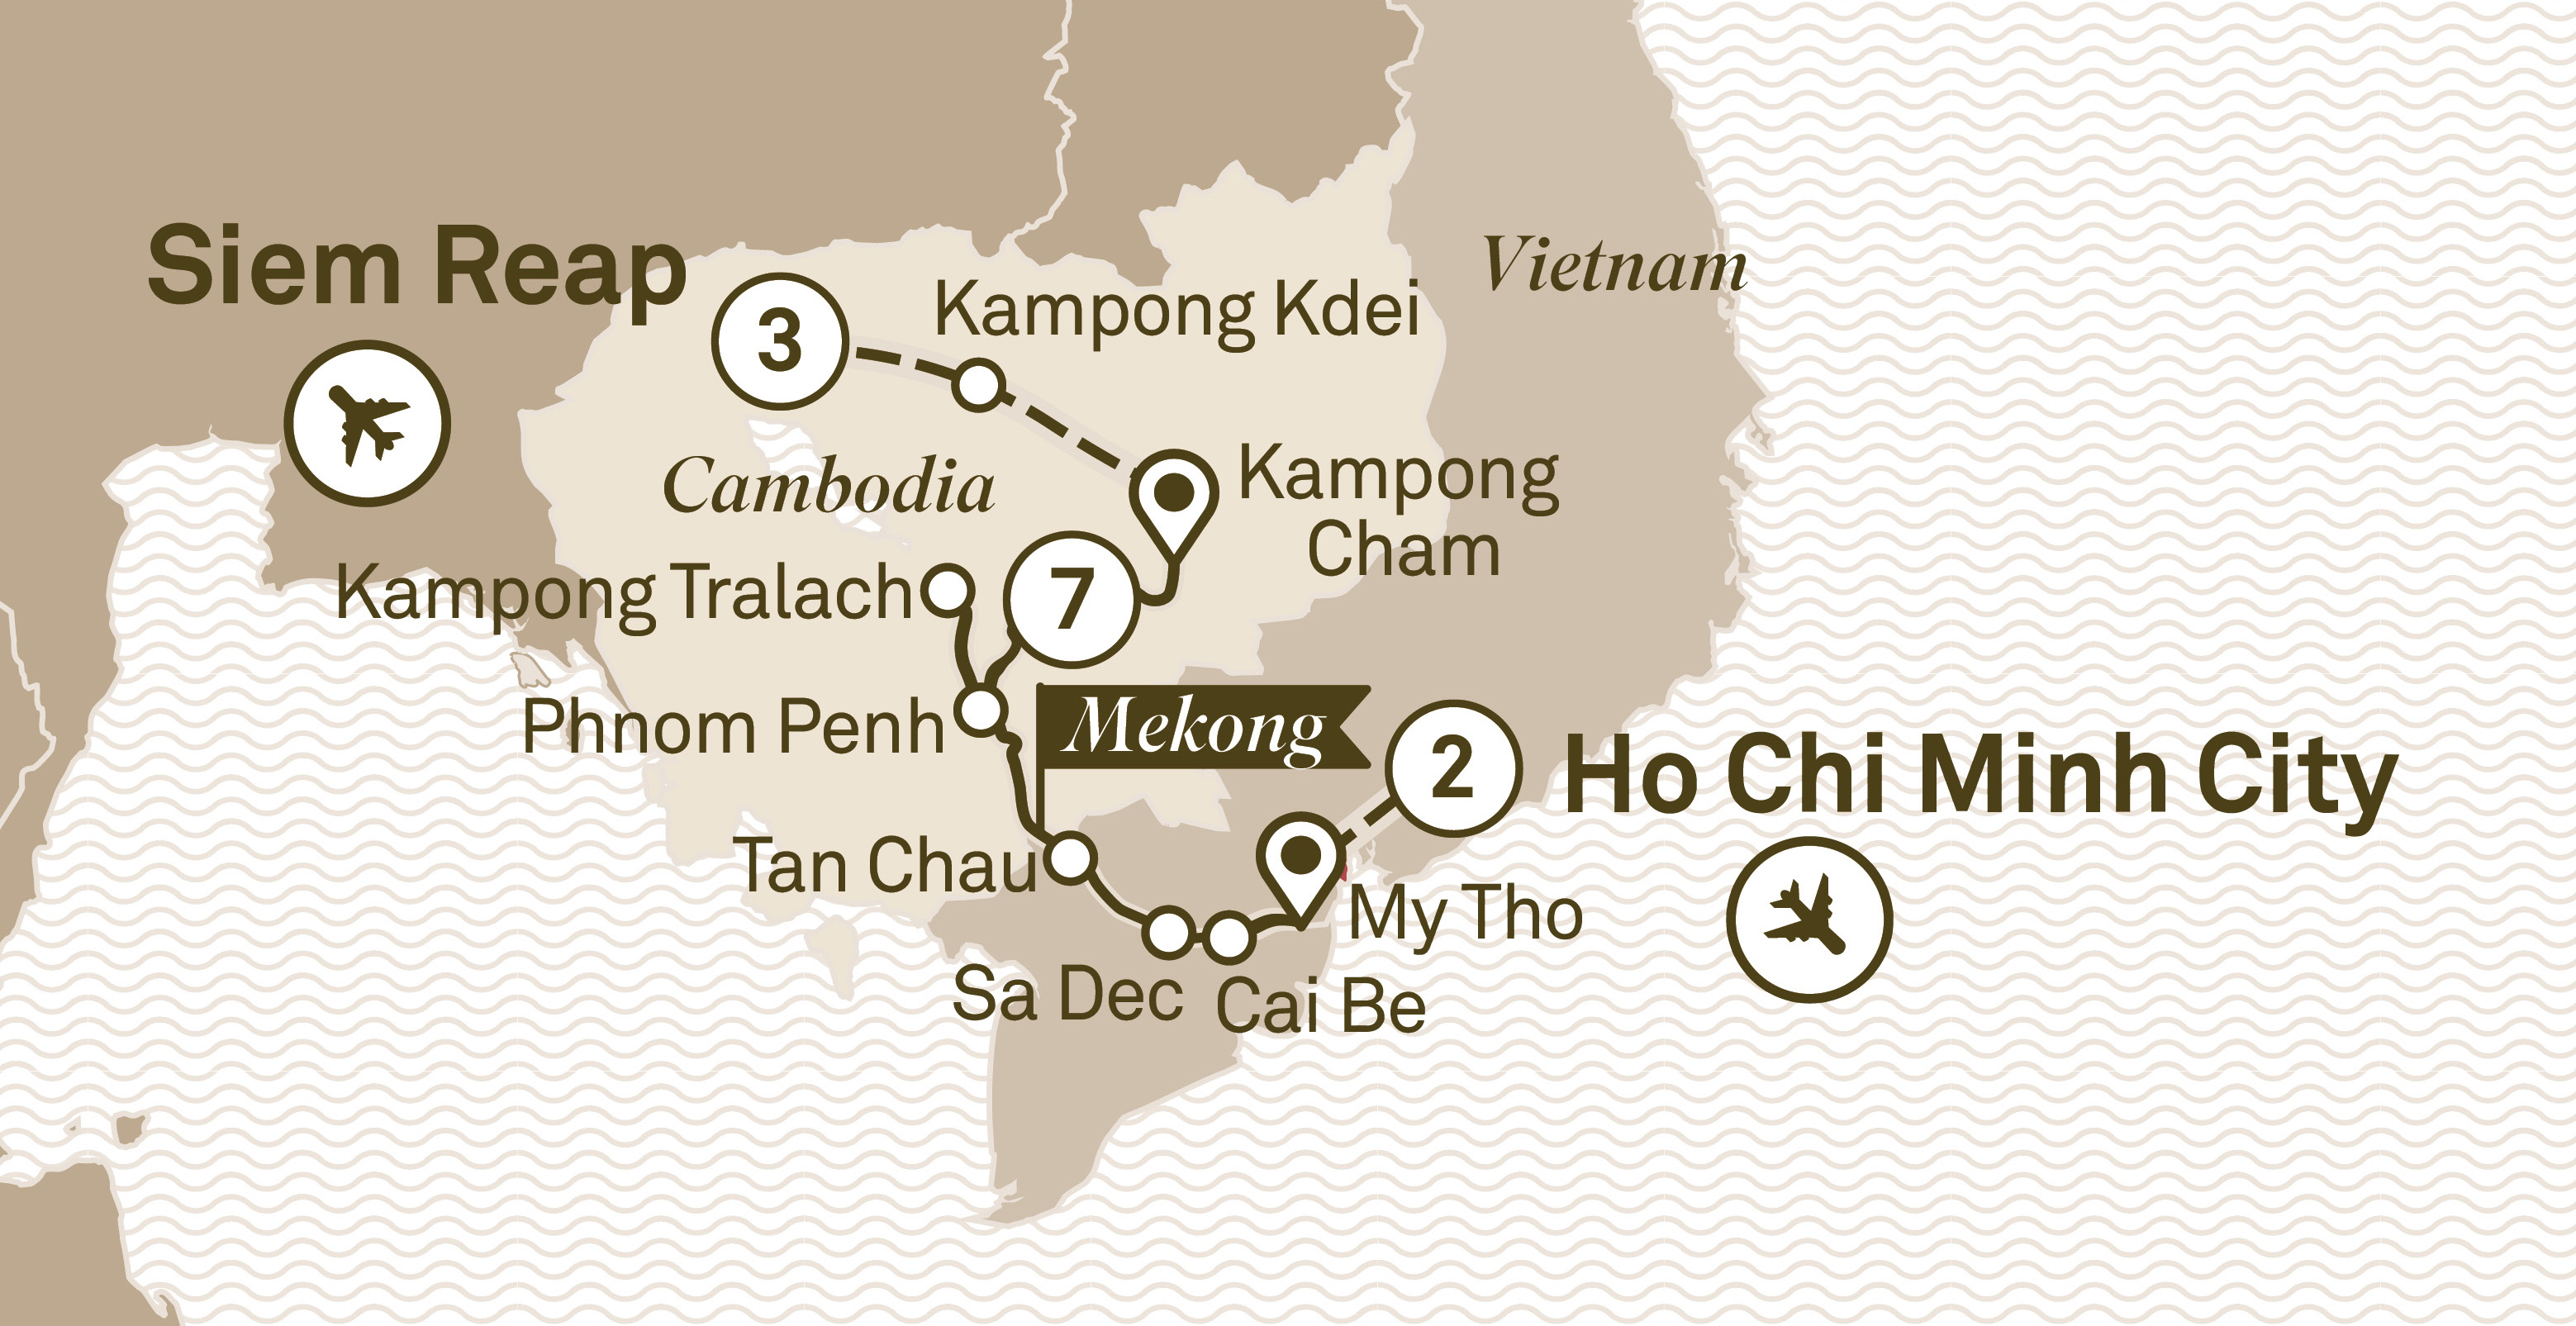 Itinerary map of Treasures of the Mekong